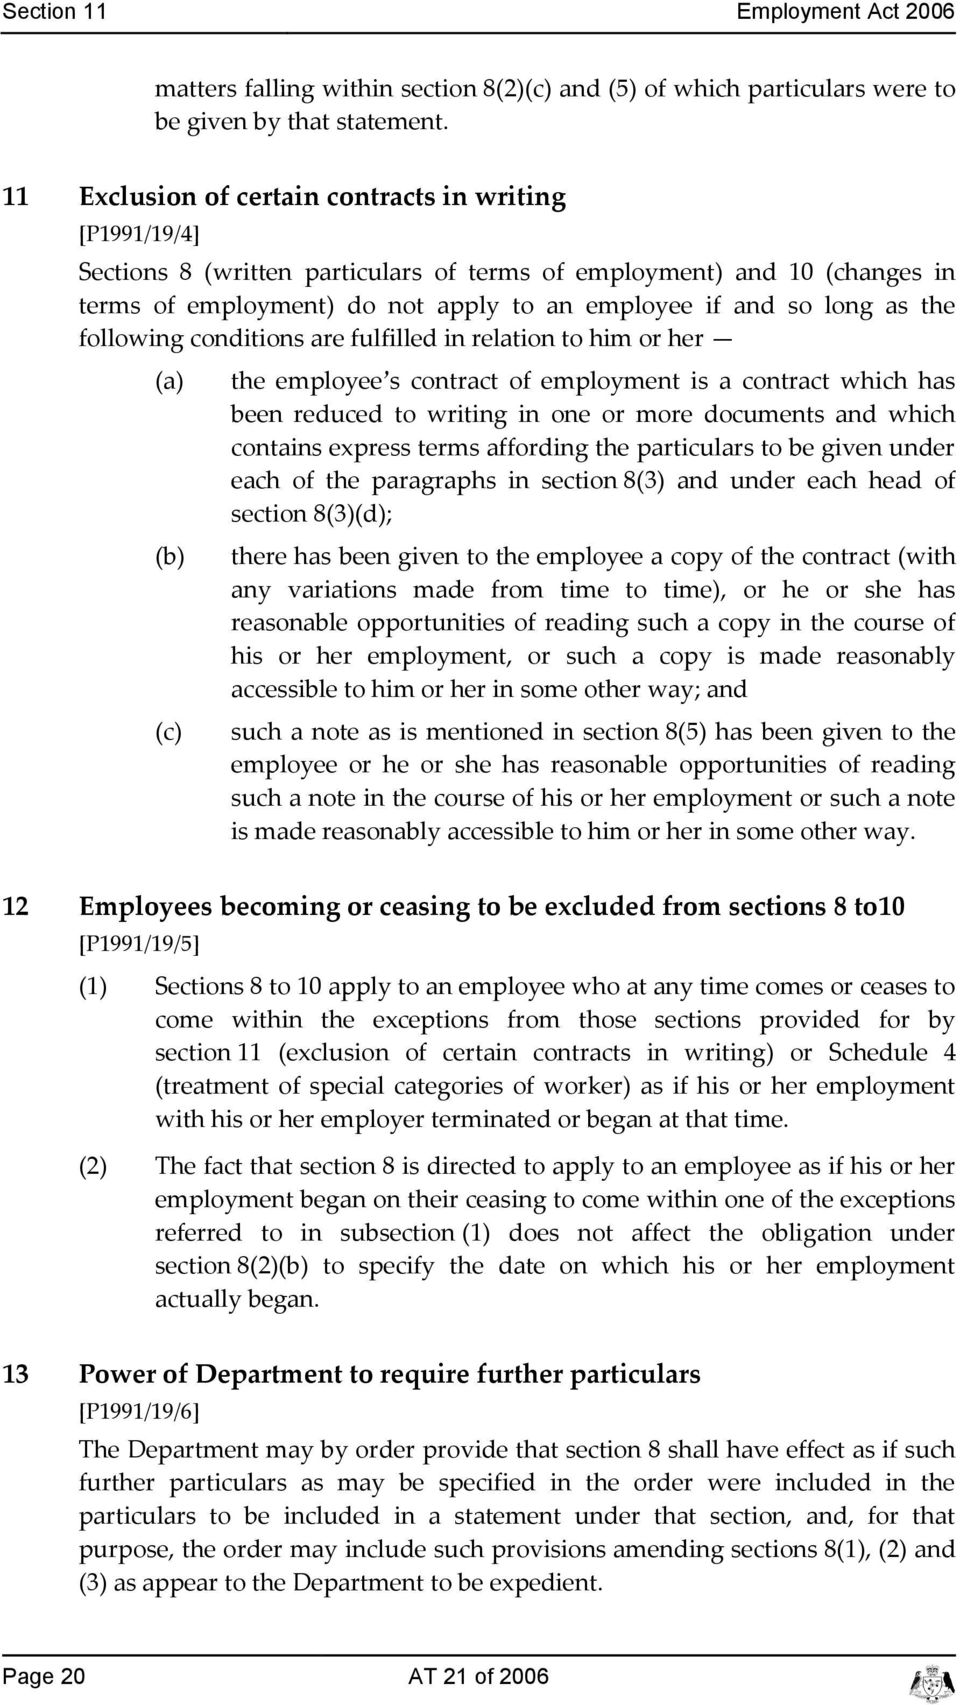 following onditions are fulfilled in relation to him or her () the employee s ontrat of employment is a ontrat whih has been redued to writing in one or more douments and whih ontains express terms